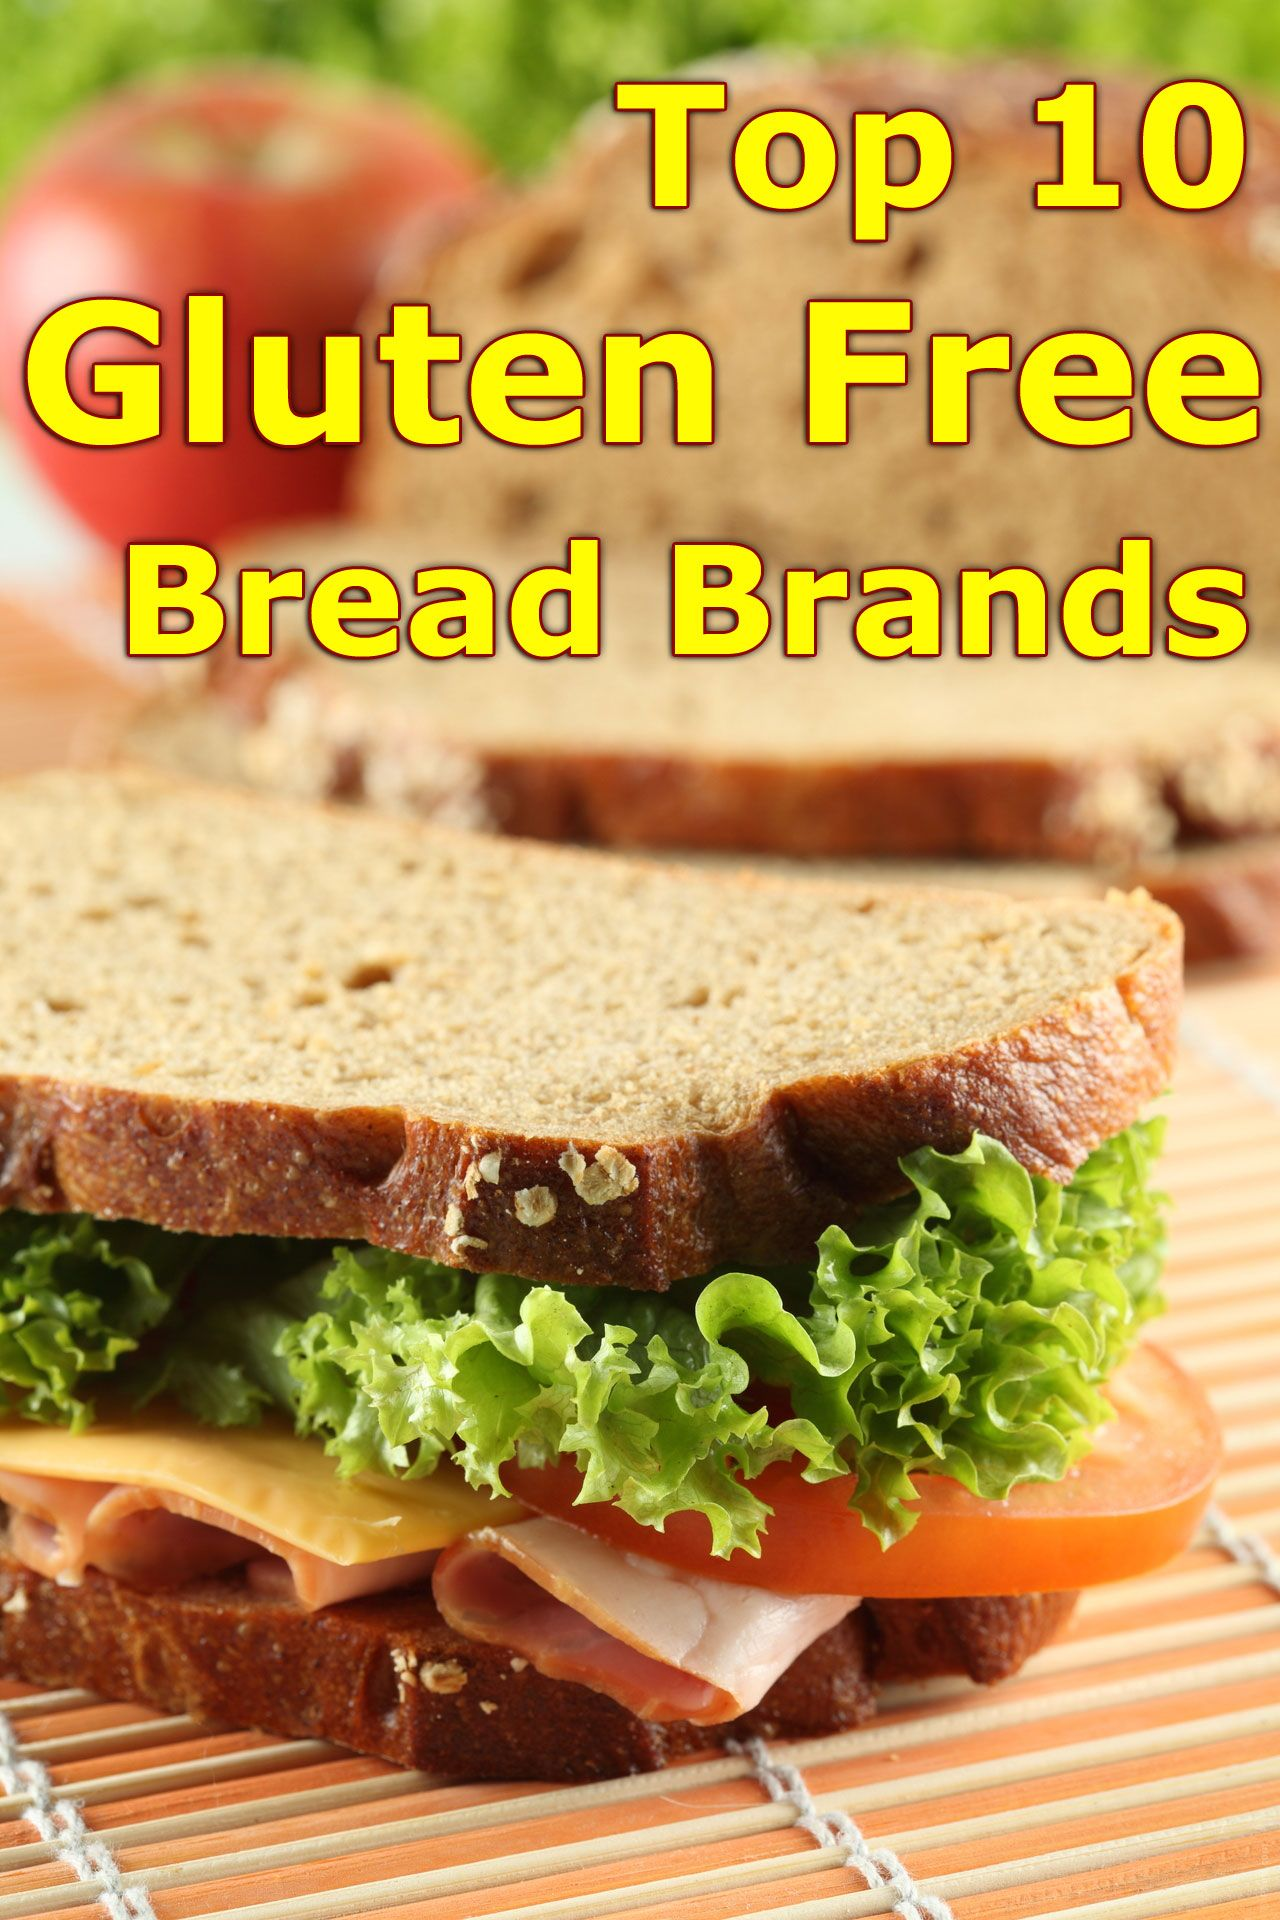 Top 10 Gluten Free Bread Brands Best Gluten Free Bread